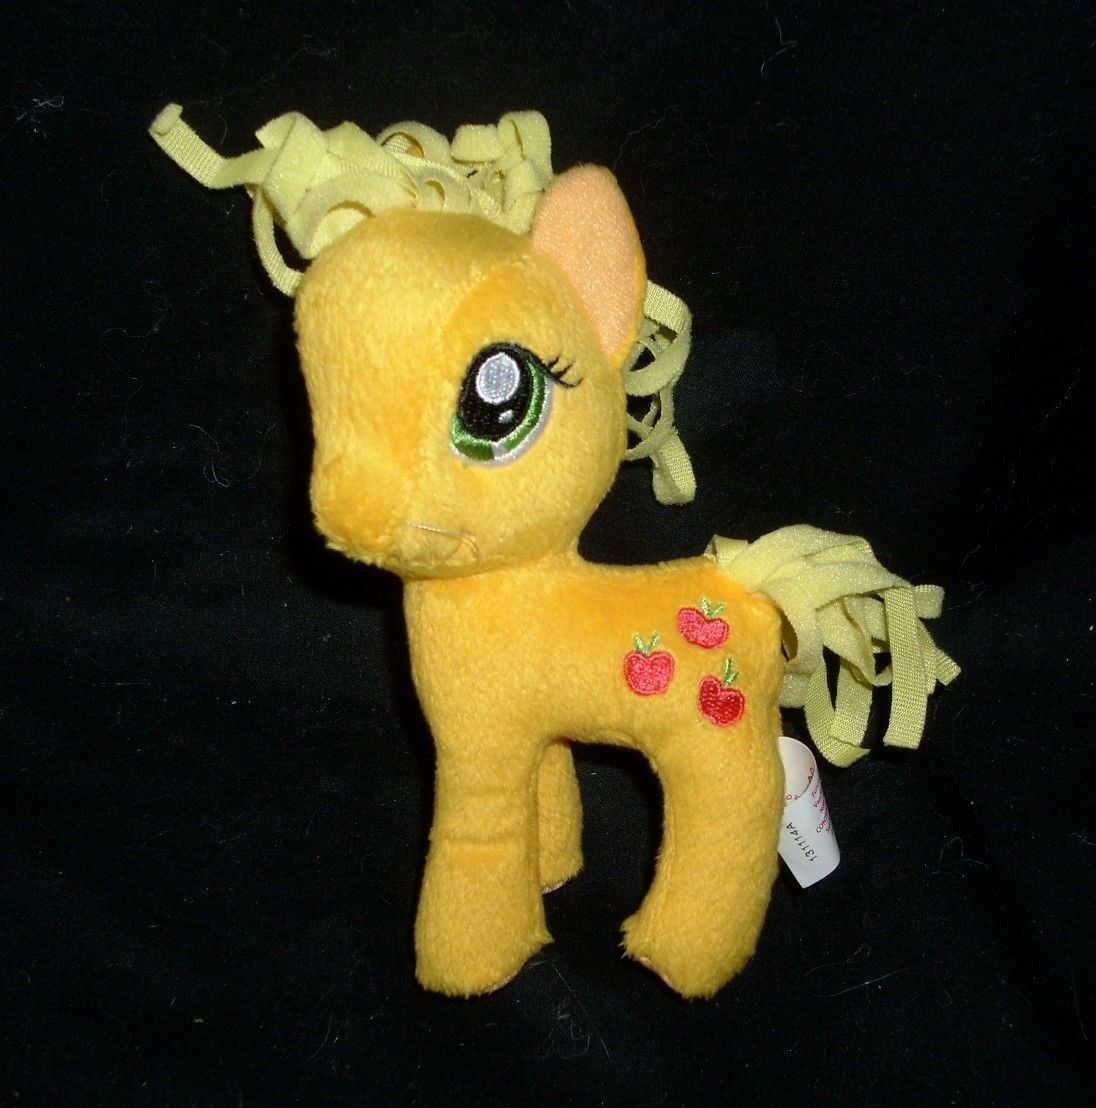 LOT 3 MY LITTLE PONY PONIES RAINBOW DASH APPLEJACK TY STUFFED ANIMAL PLUSH TOY image 6